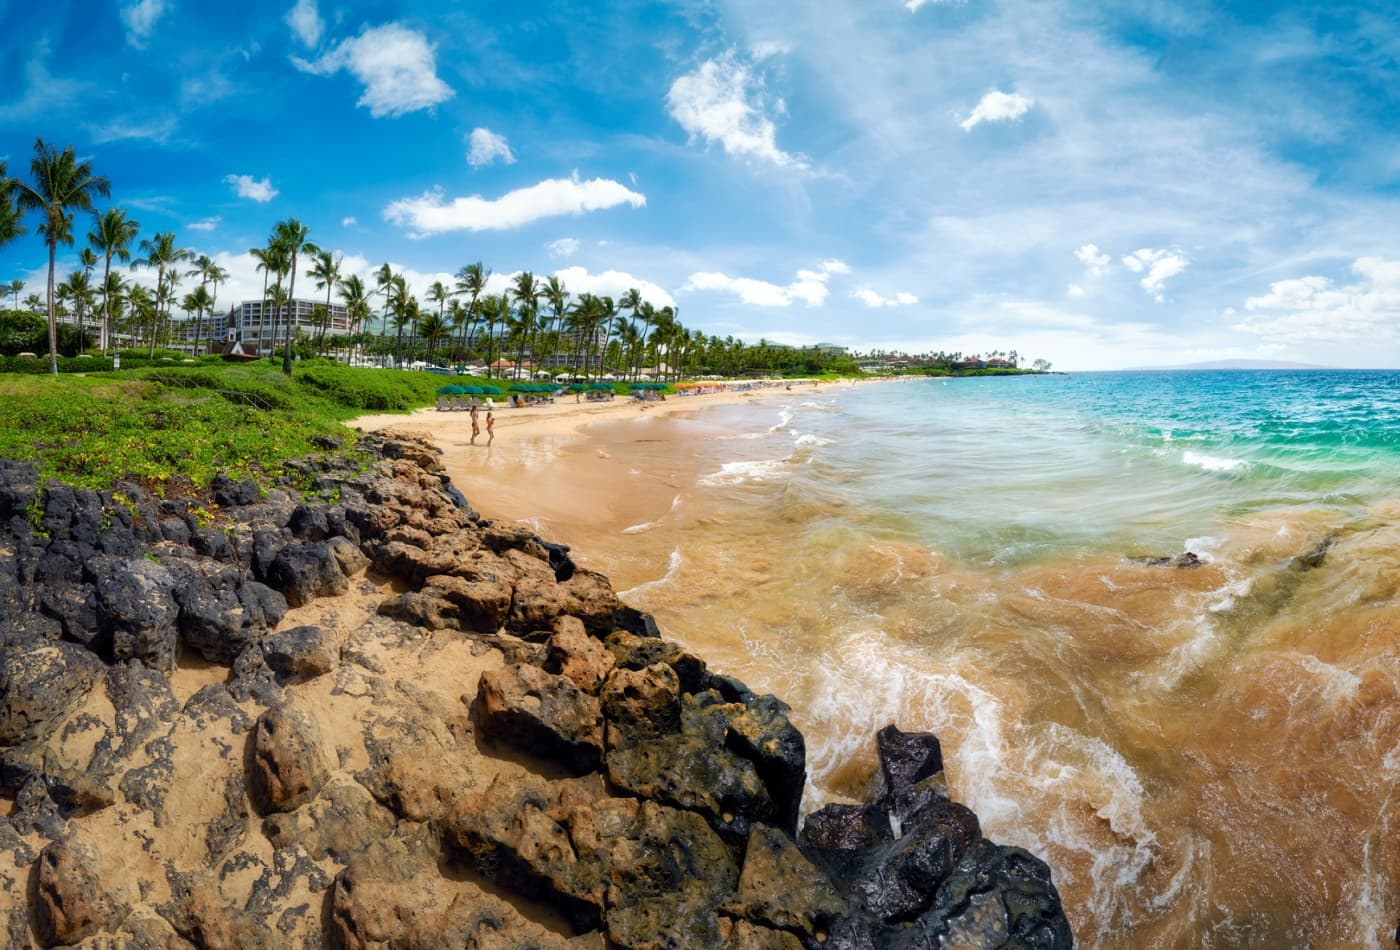 Travel guide: Where to save and splurge in Maui, Hawaii